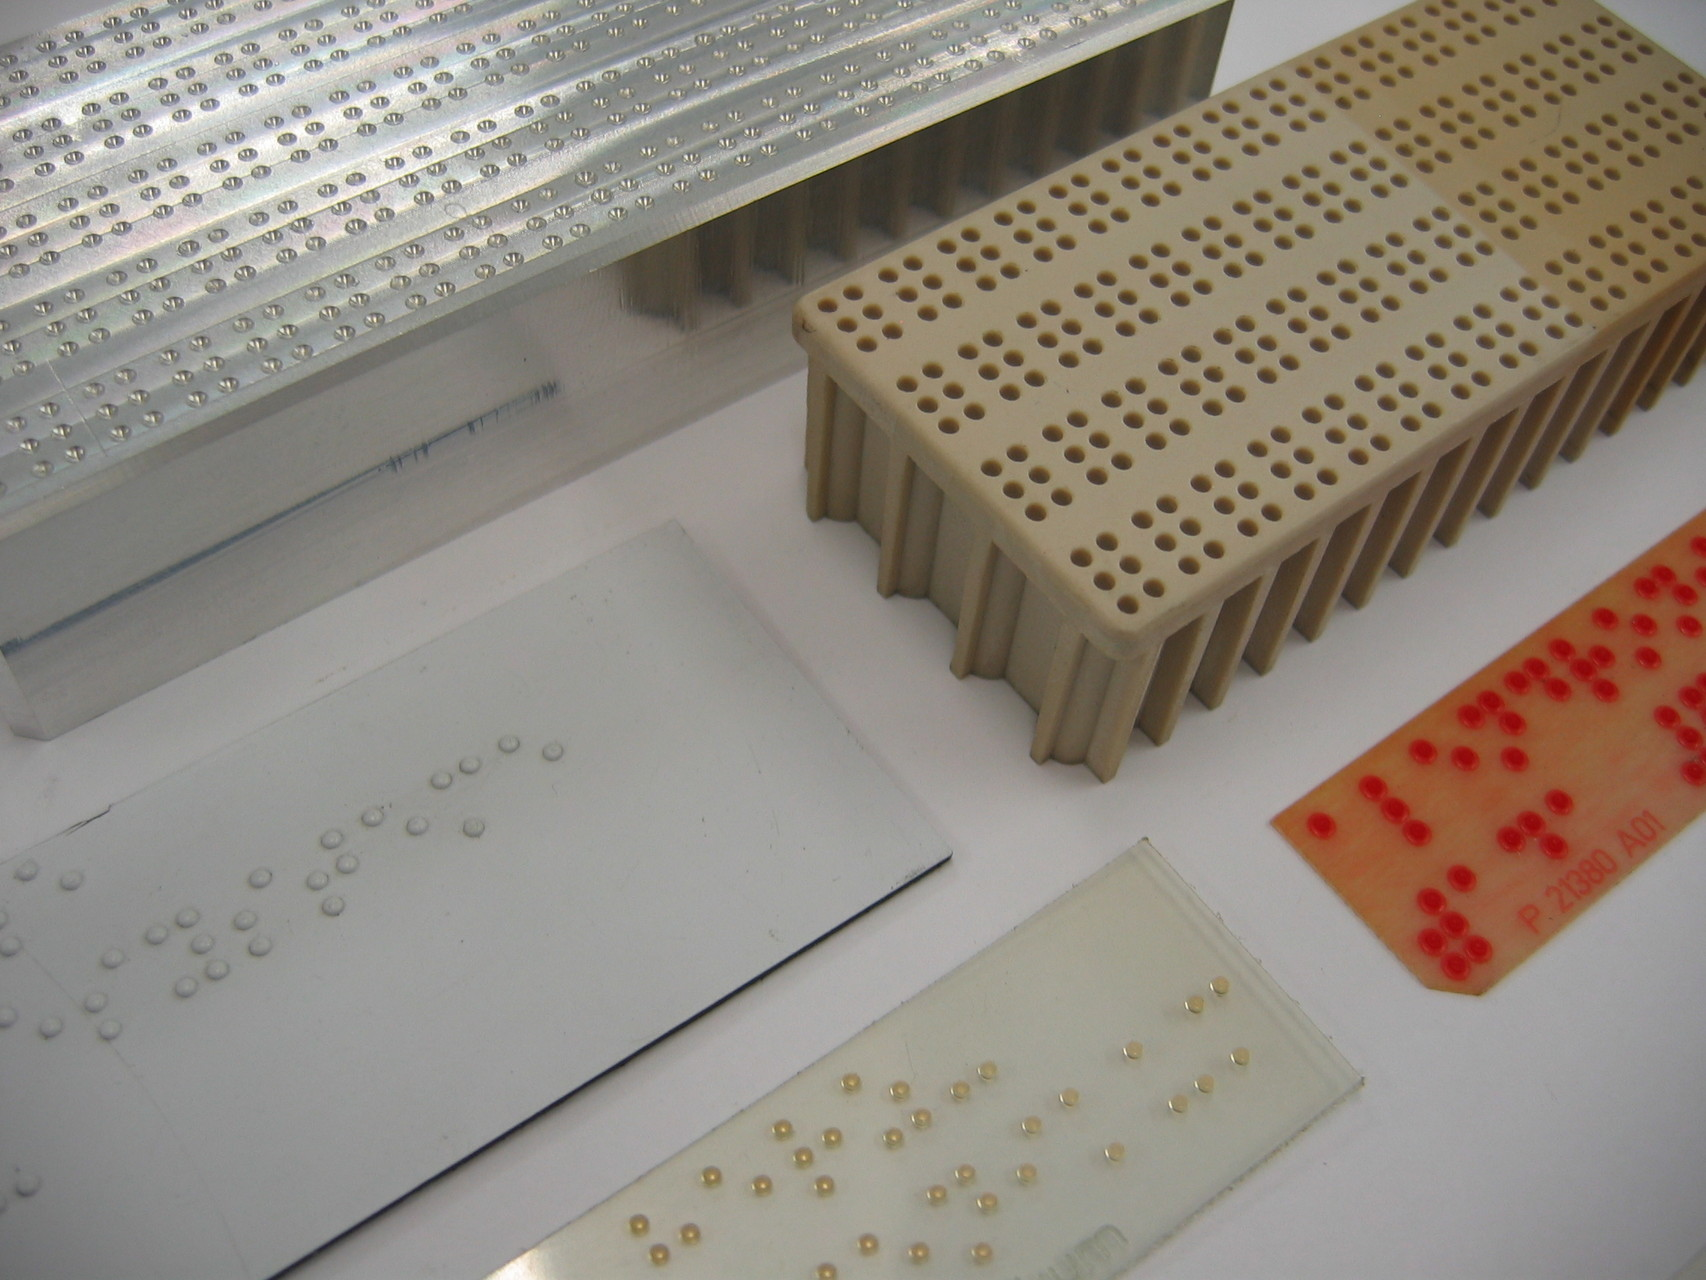 Blindenschrift / Braille